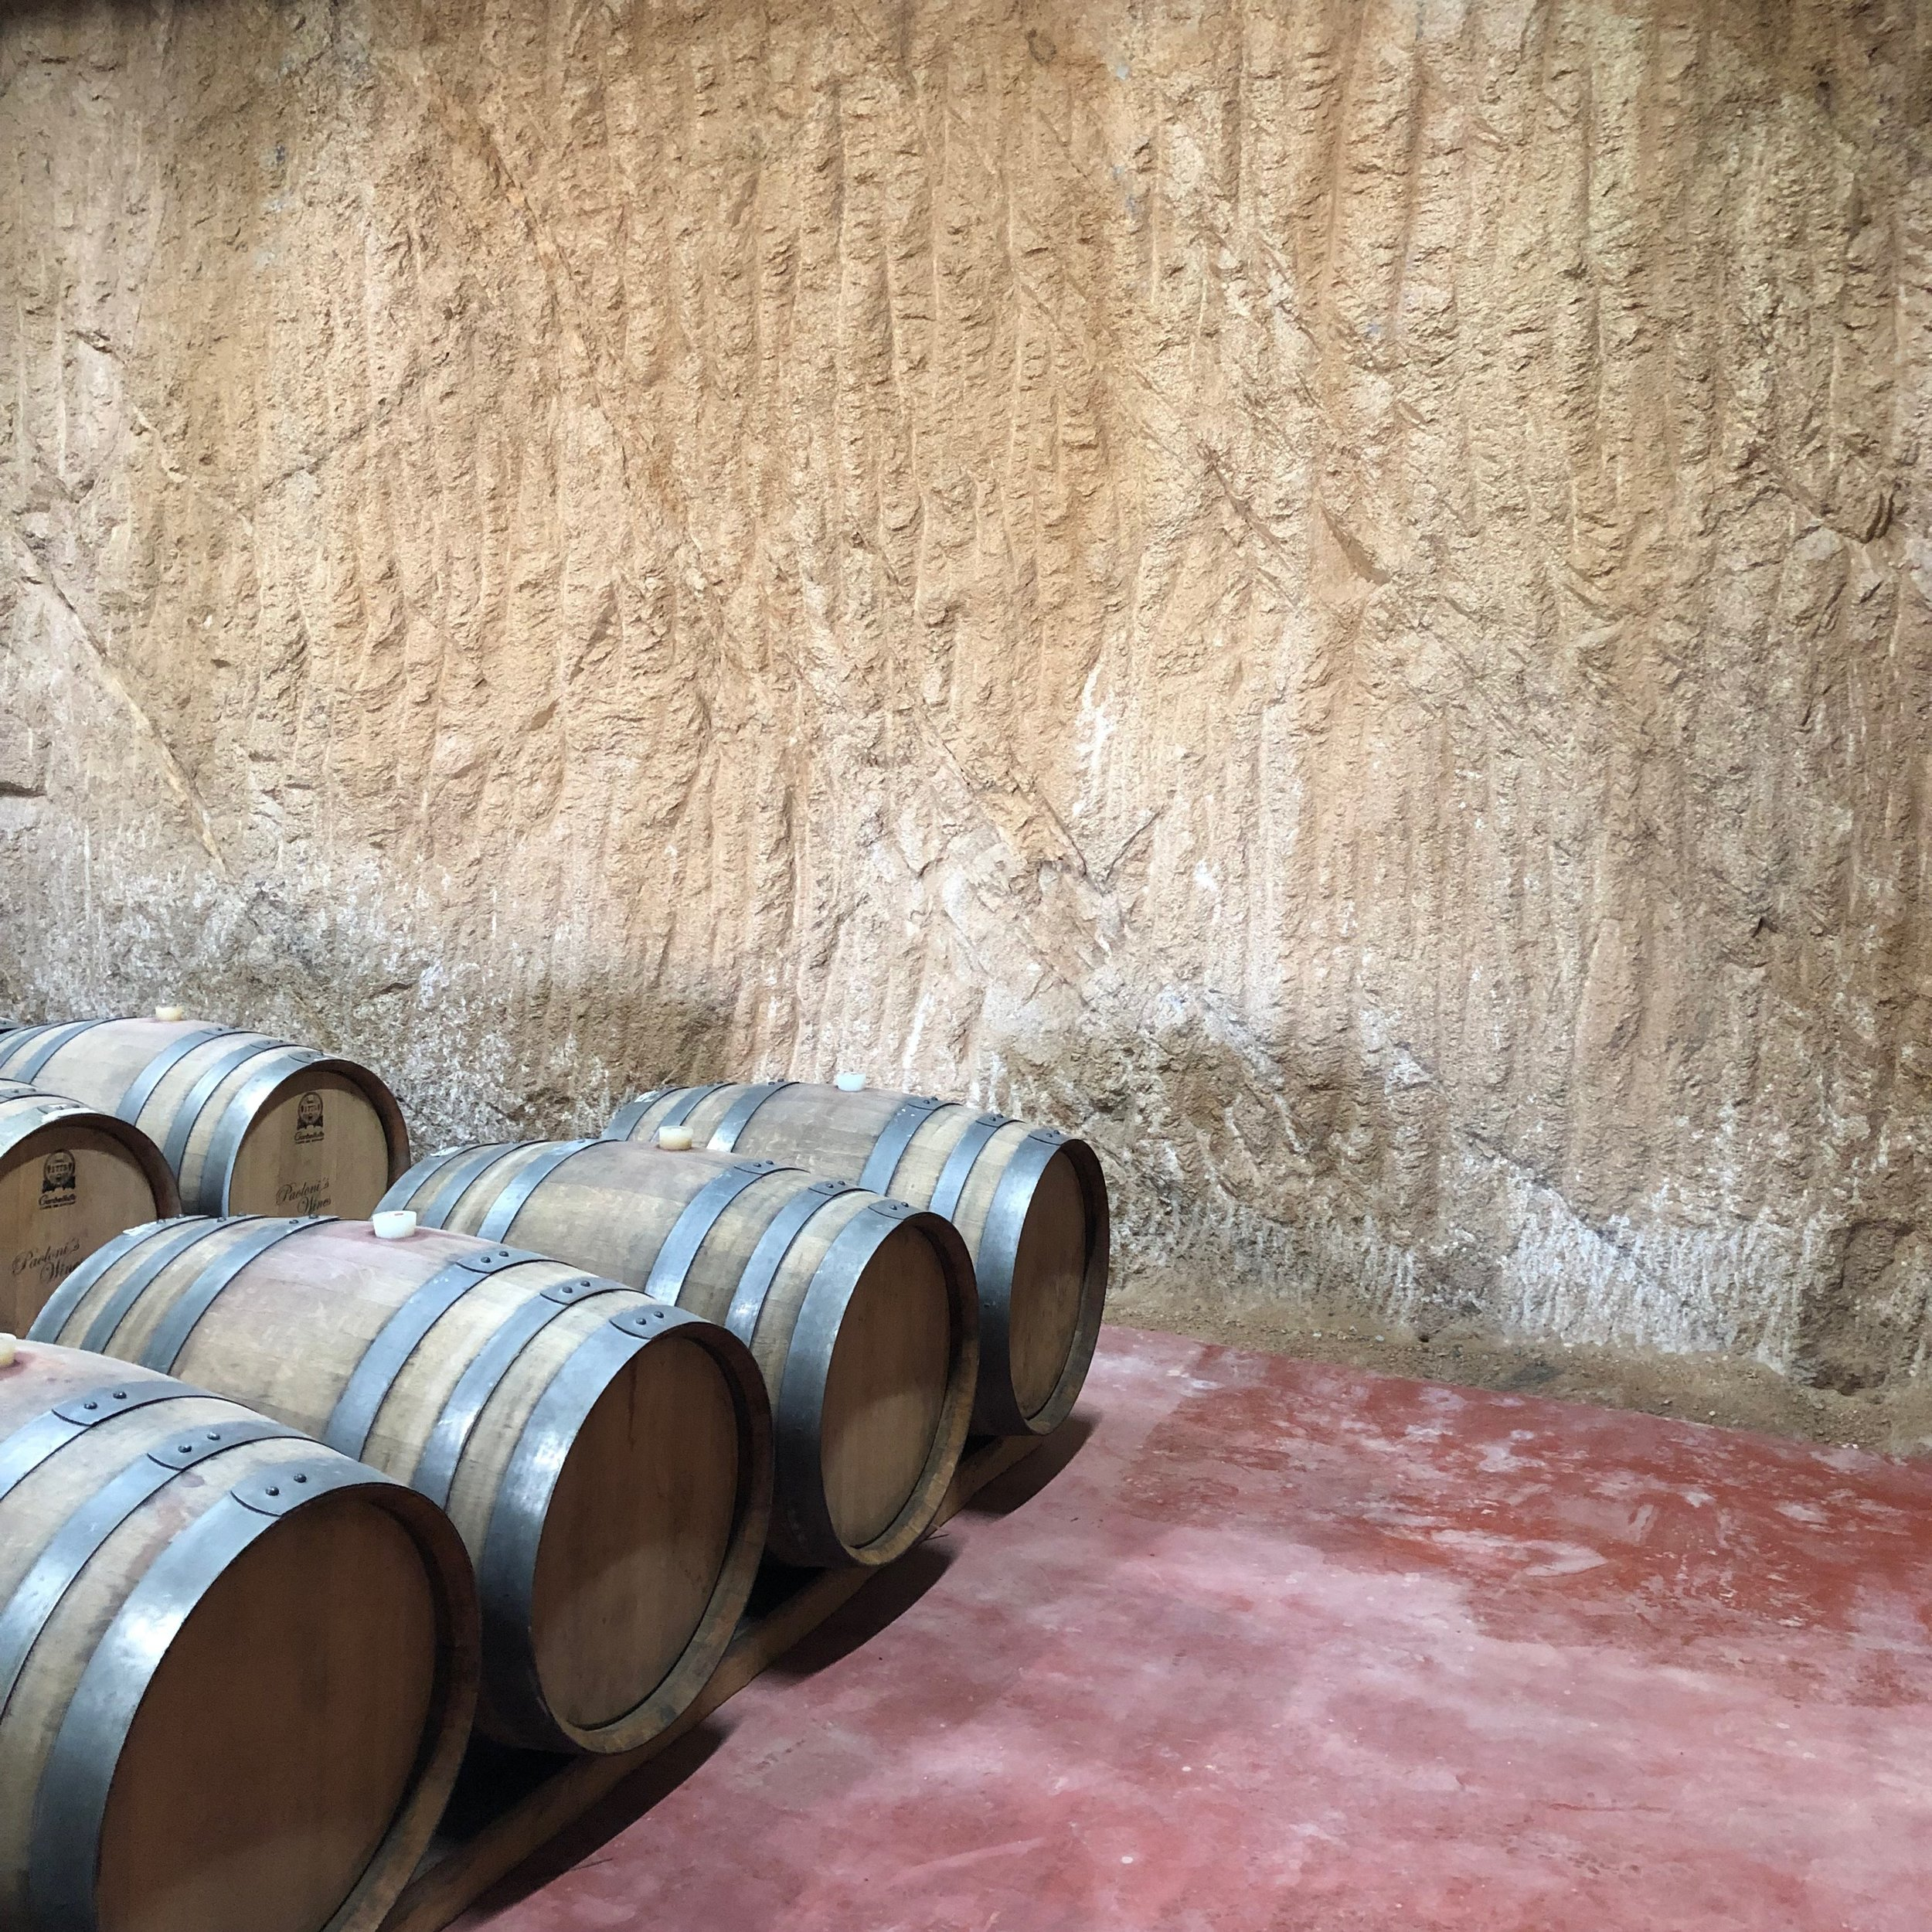 Barrel room at Villa Montefiori